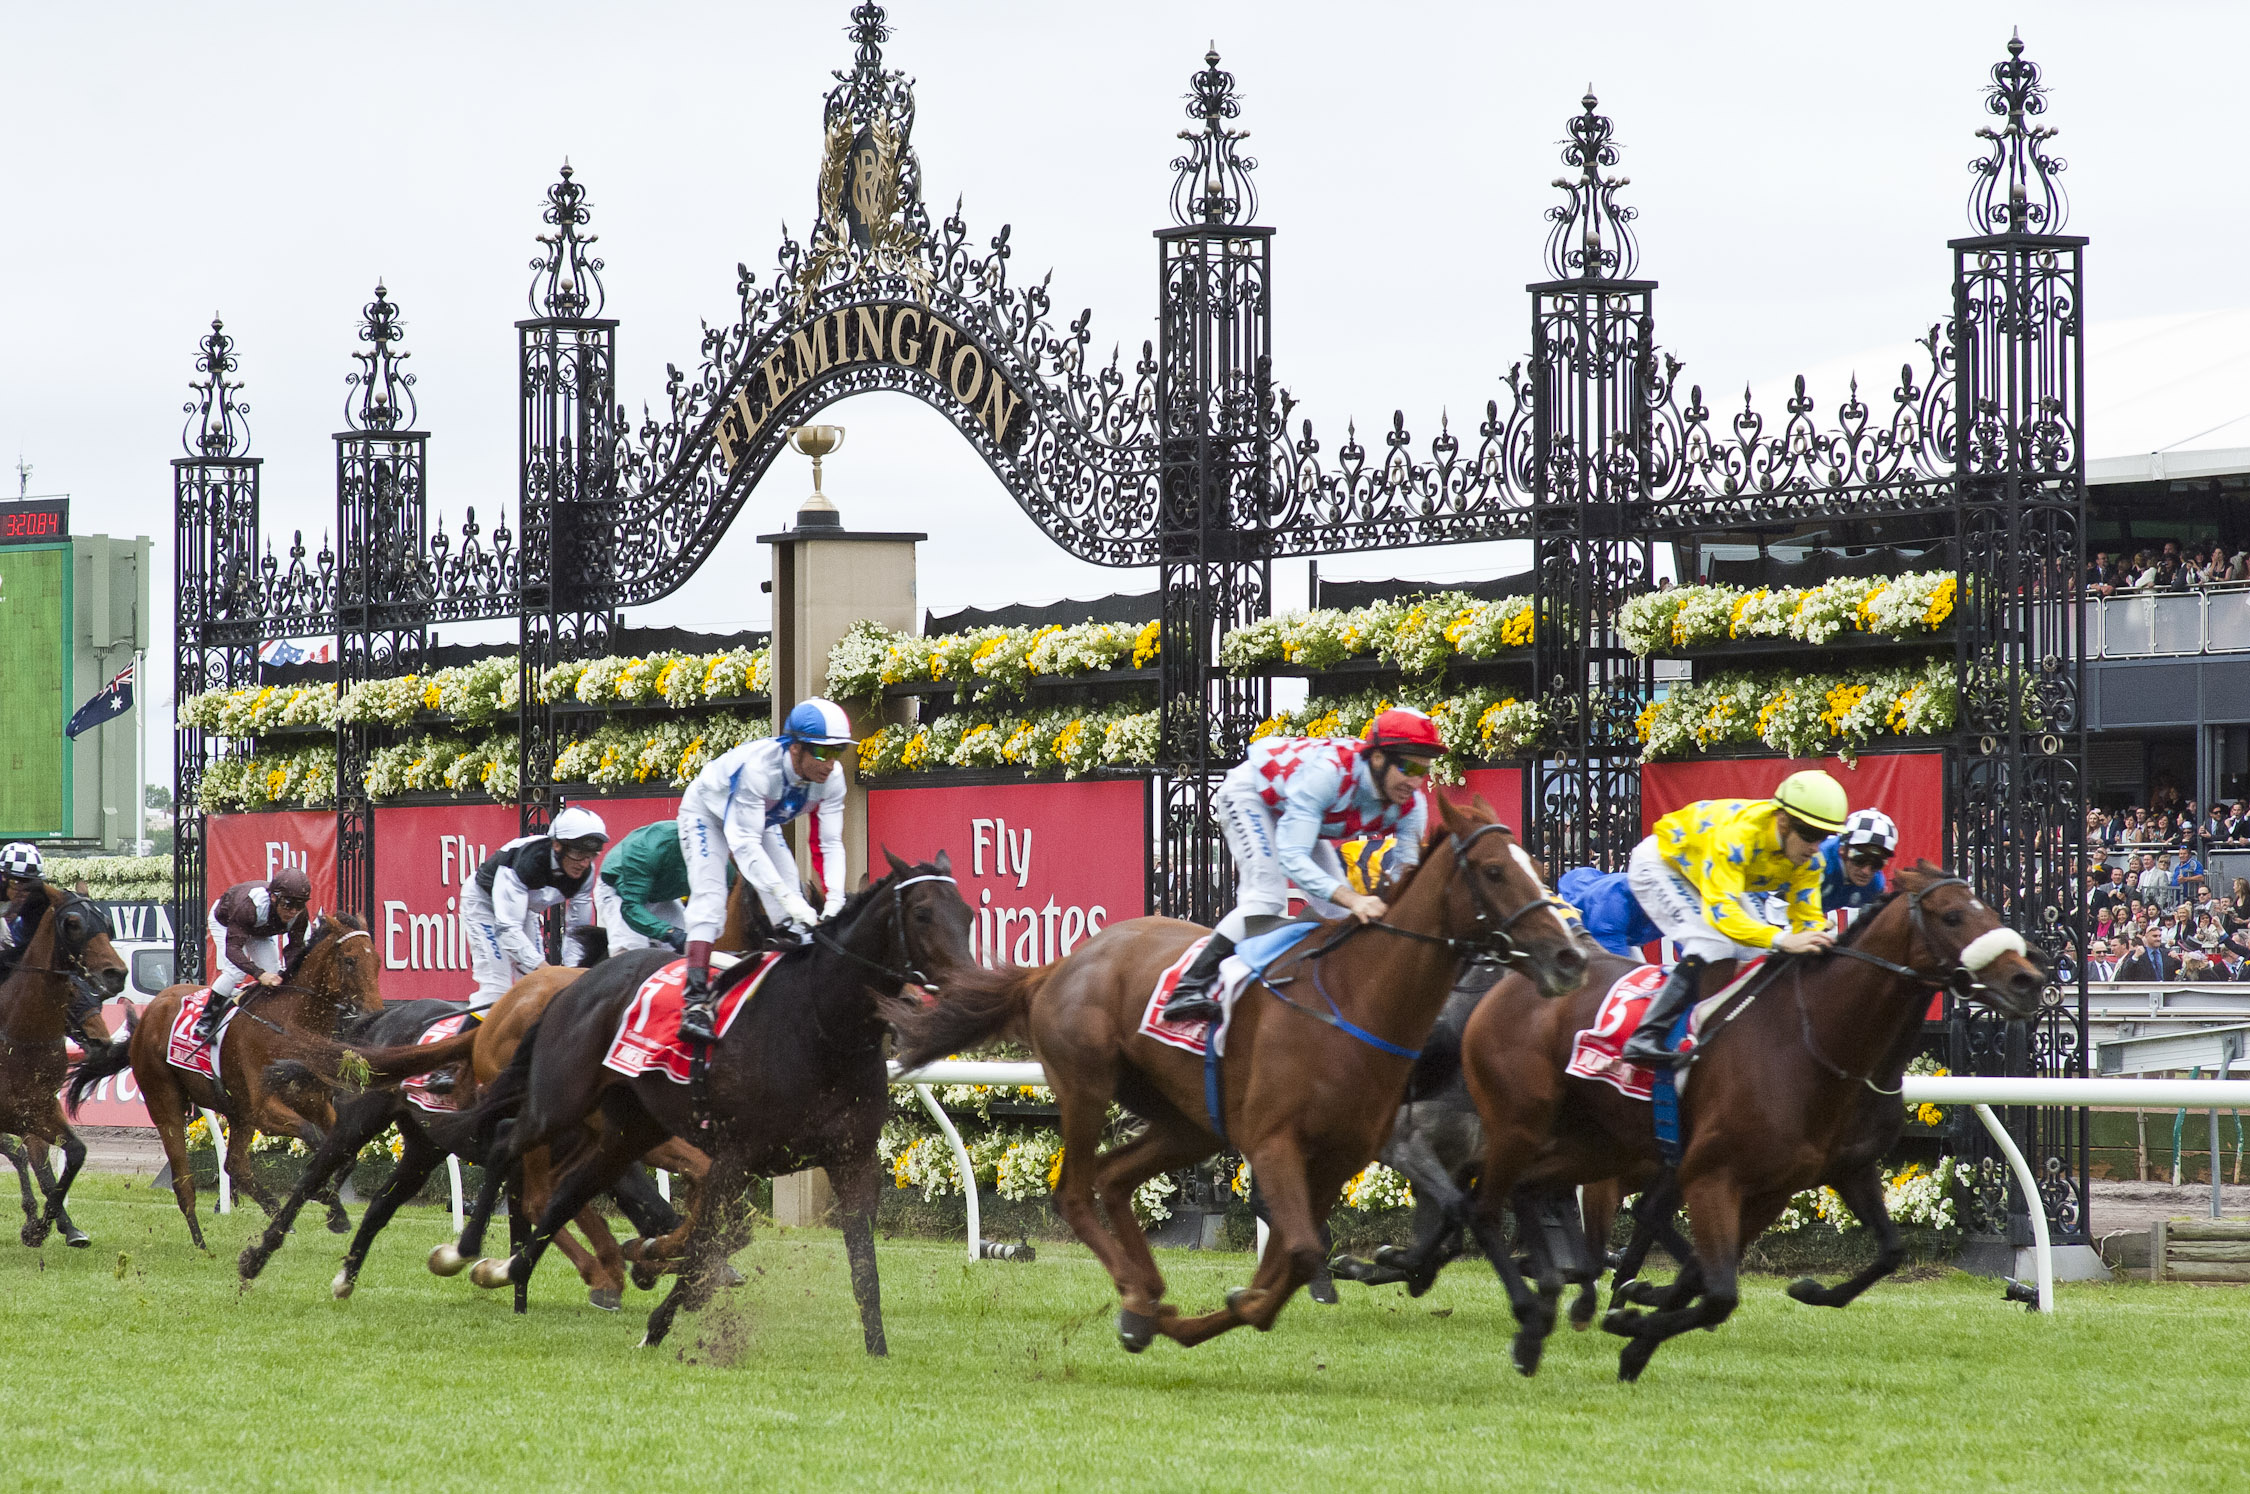 Melbourne Cup Spring Carnival Racing - click to see an enlarged version of this image